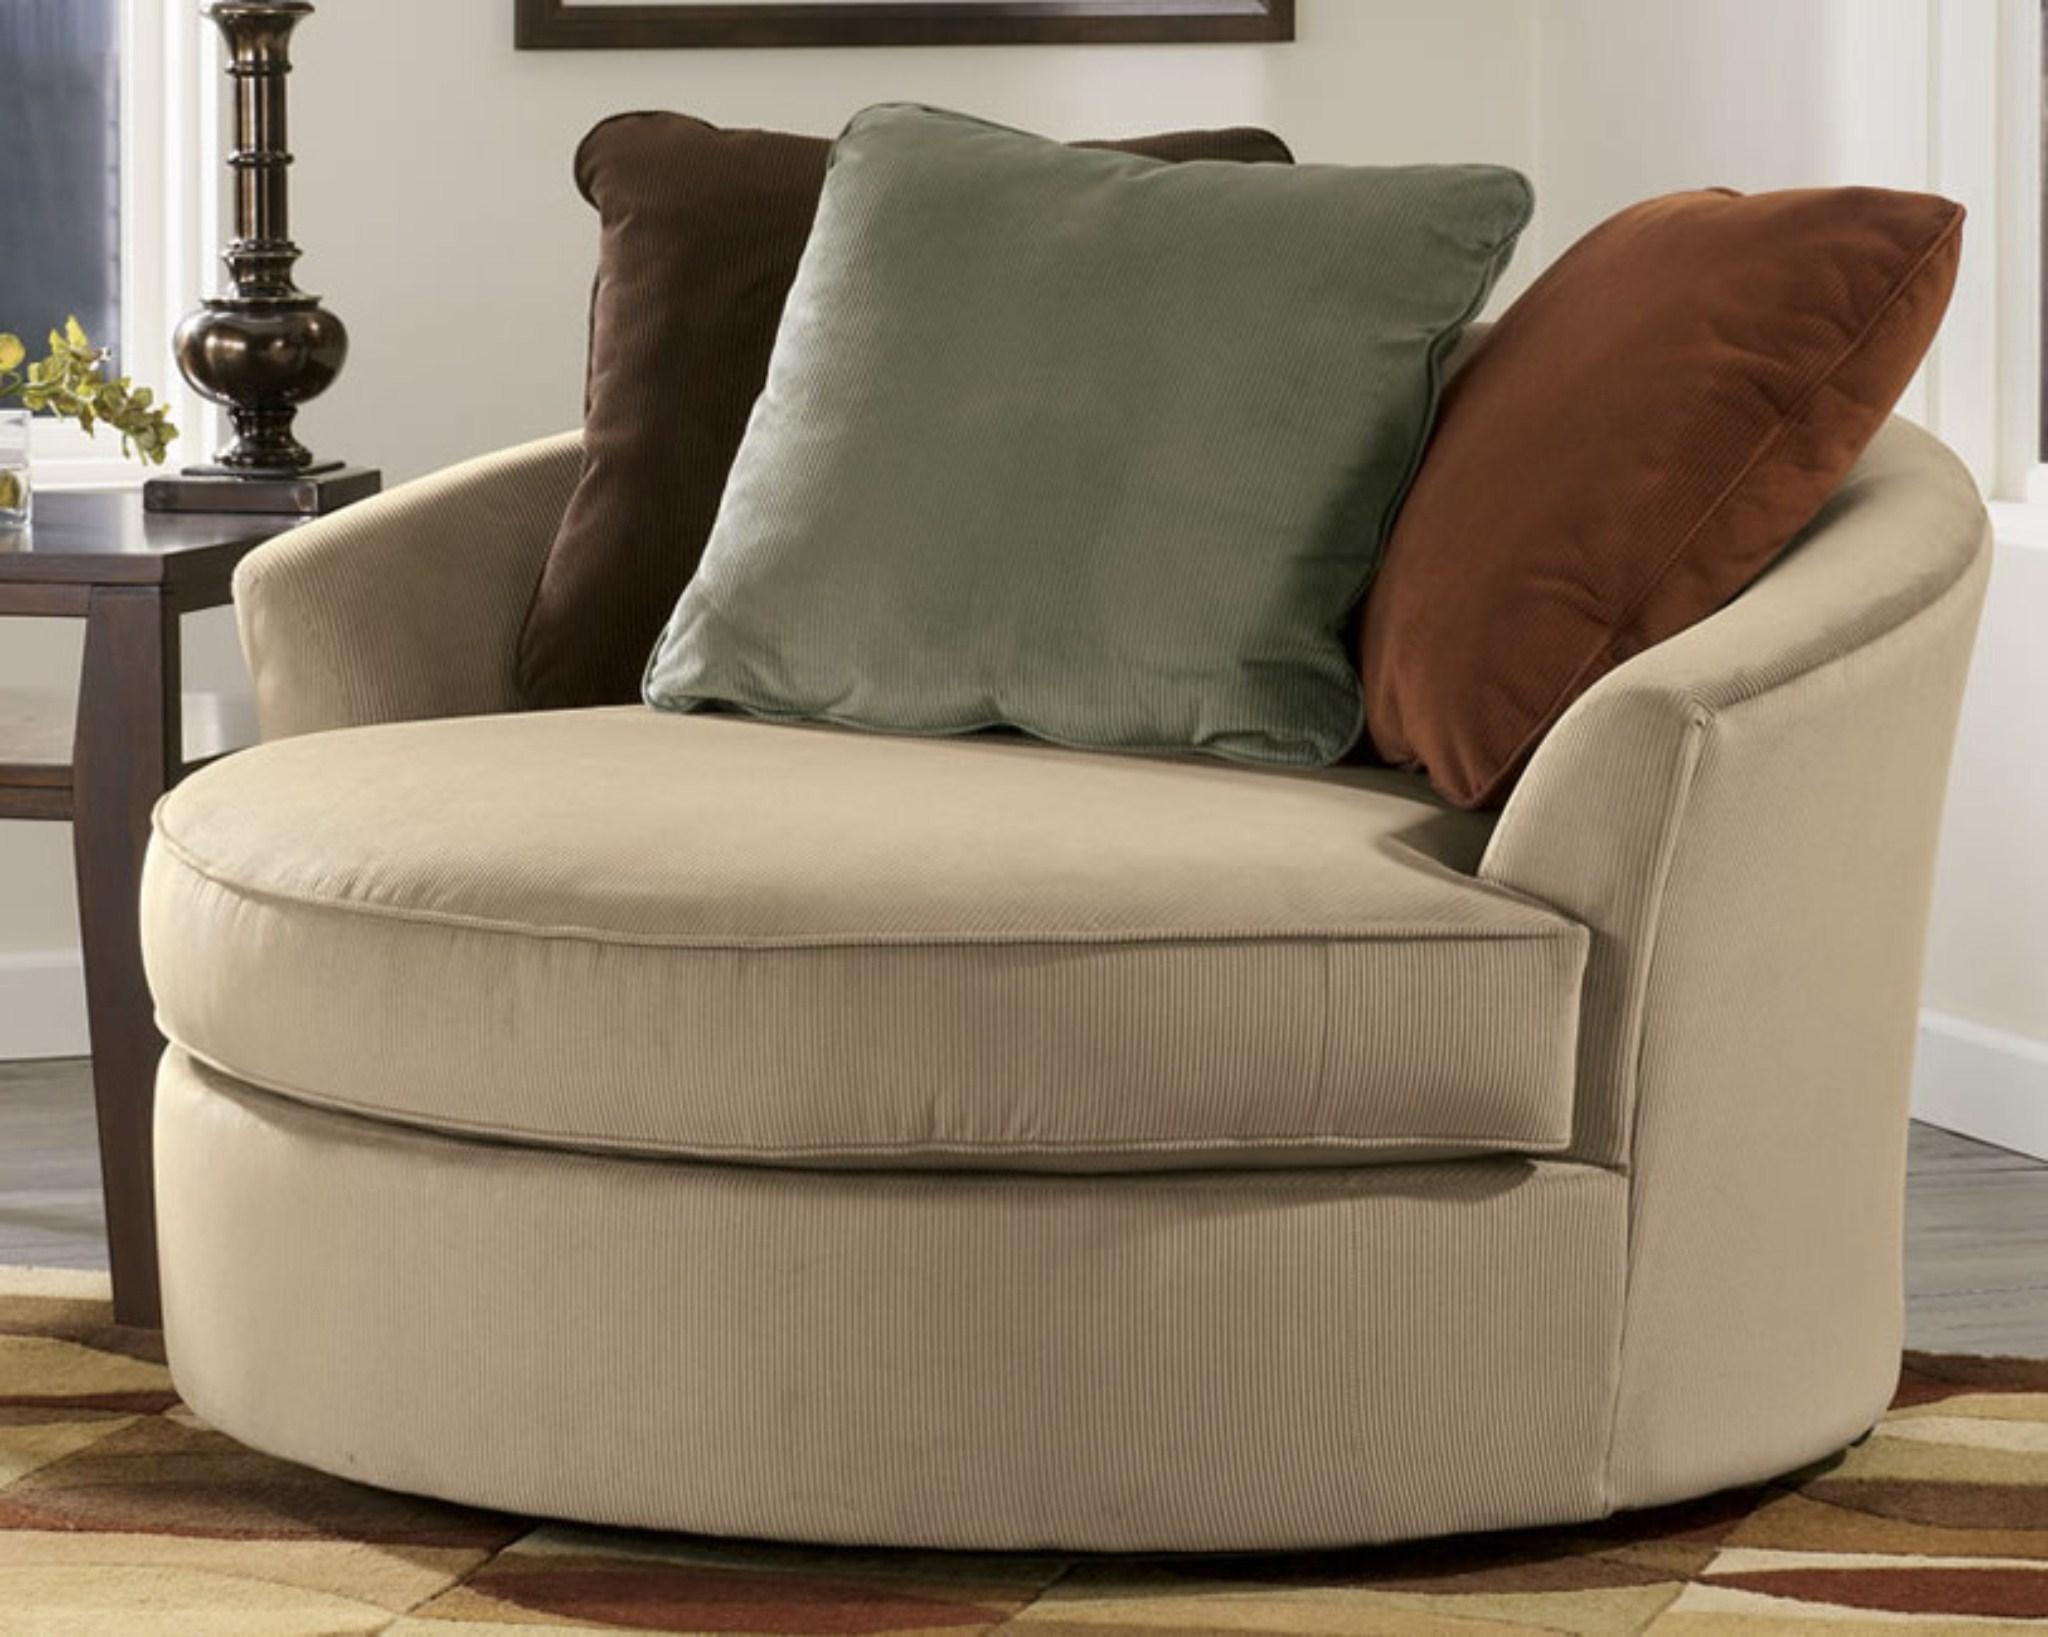 Round Swivel Sofa Chair – Leather Sectional Sofa Intended For Round Swivel Sofa Chairs (Image 9 of 20)